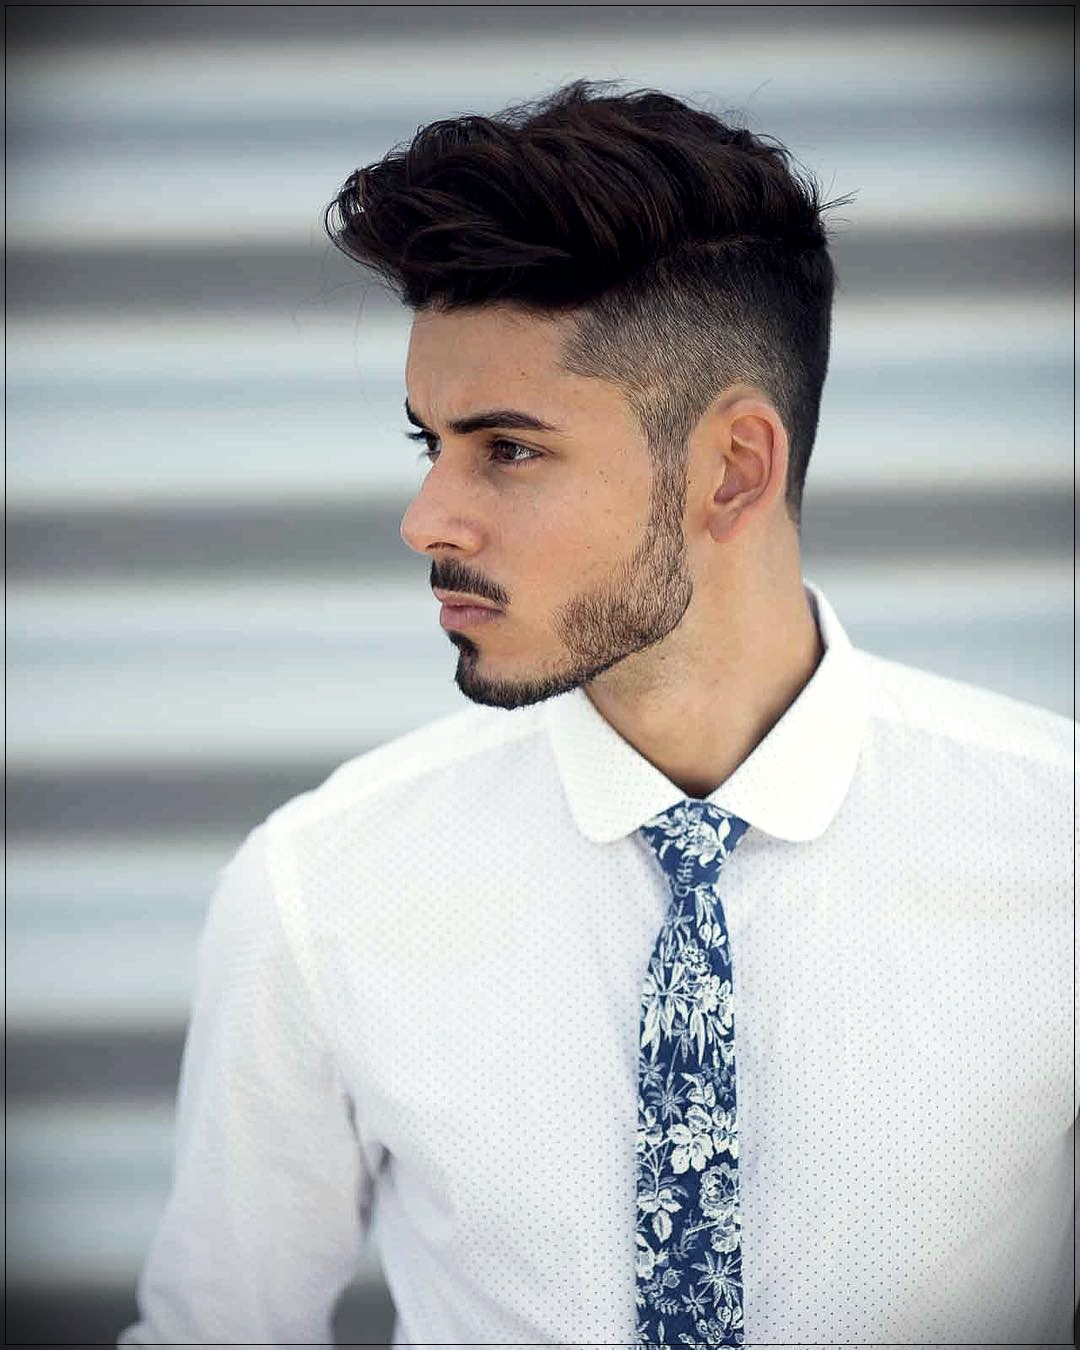 Short haircuts for men in 2018 15 - Sport these Short Haircuts for men in 2018